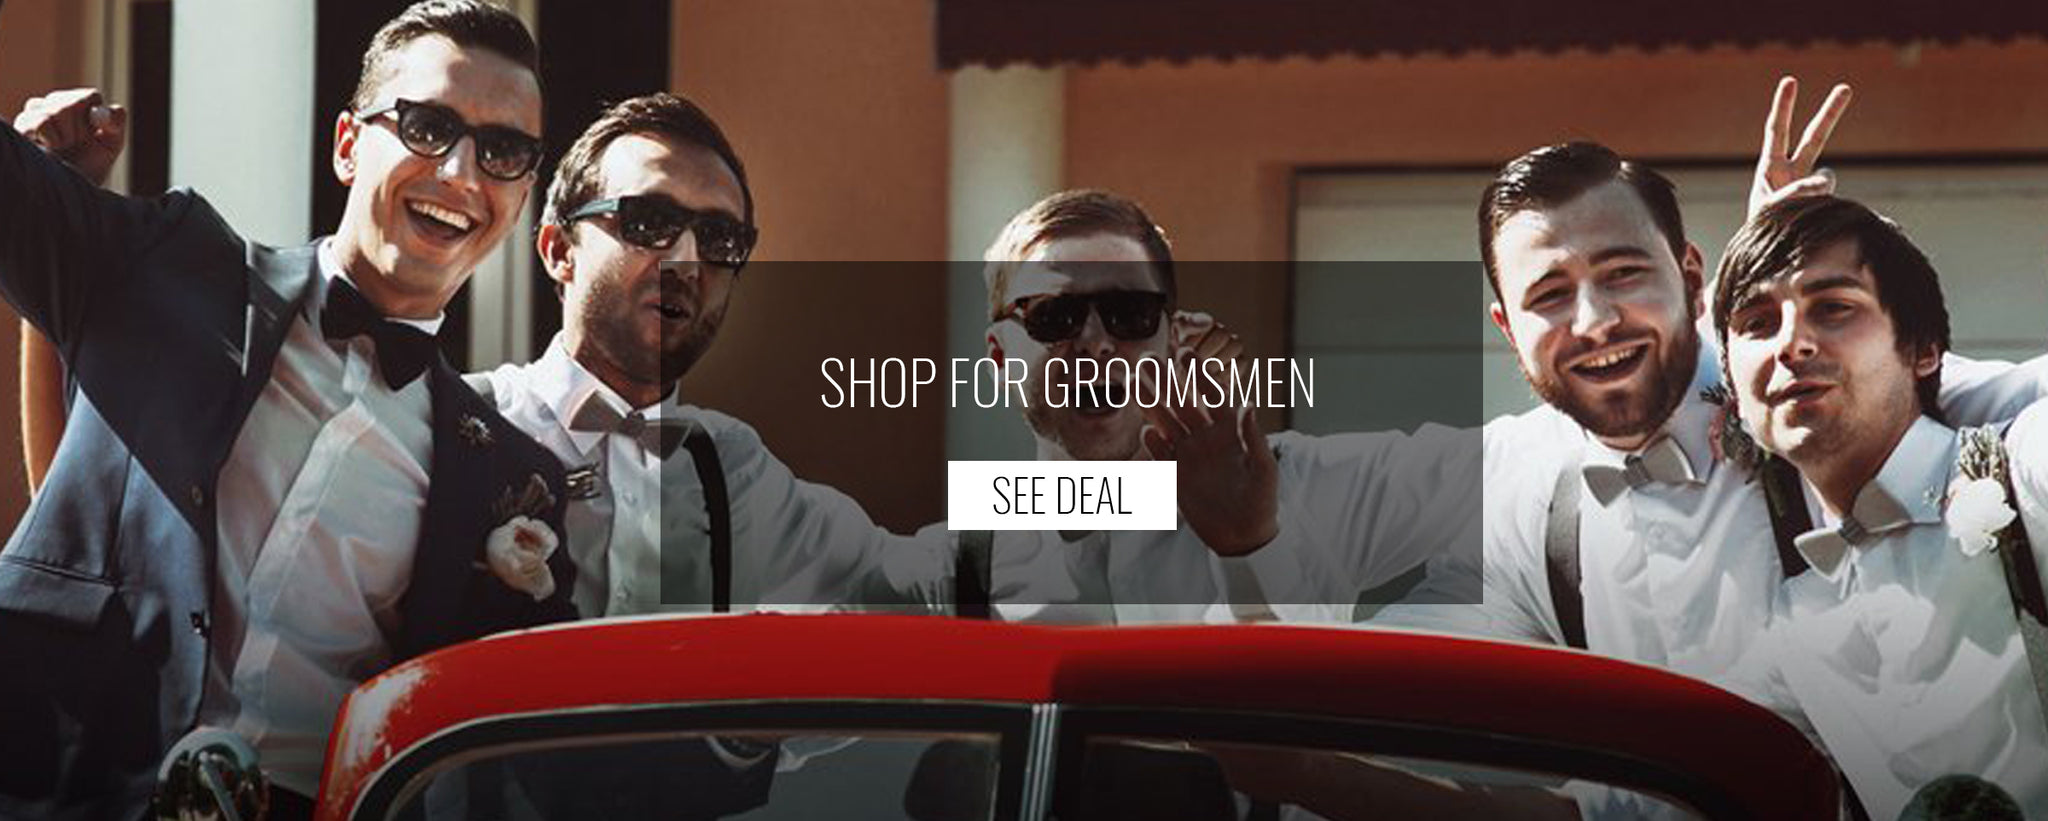 https://articulatelifestyle.com/collections/groomsmen-deal